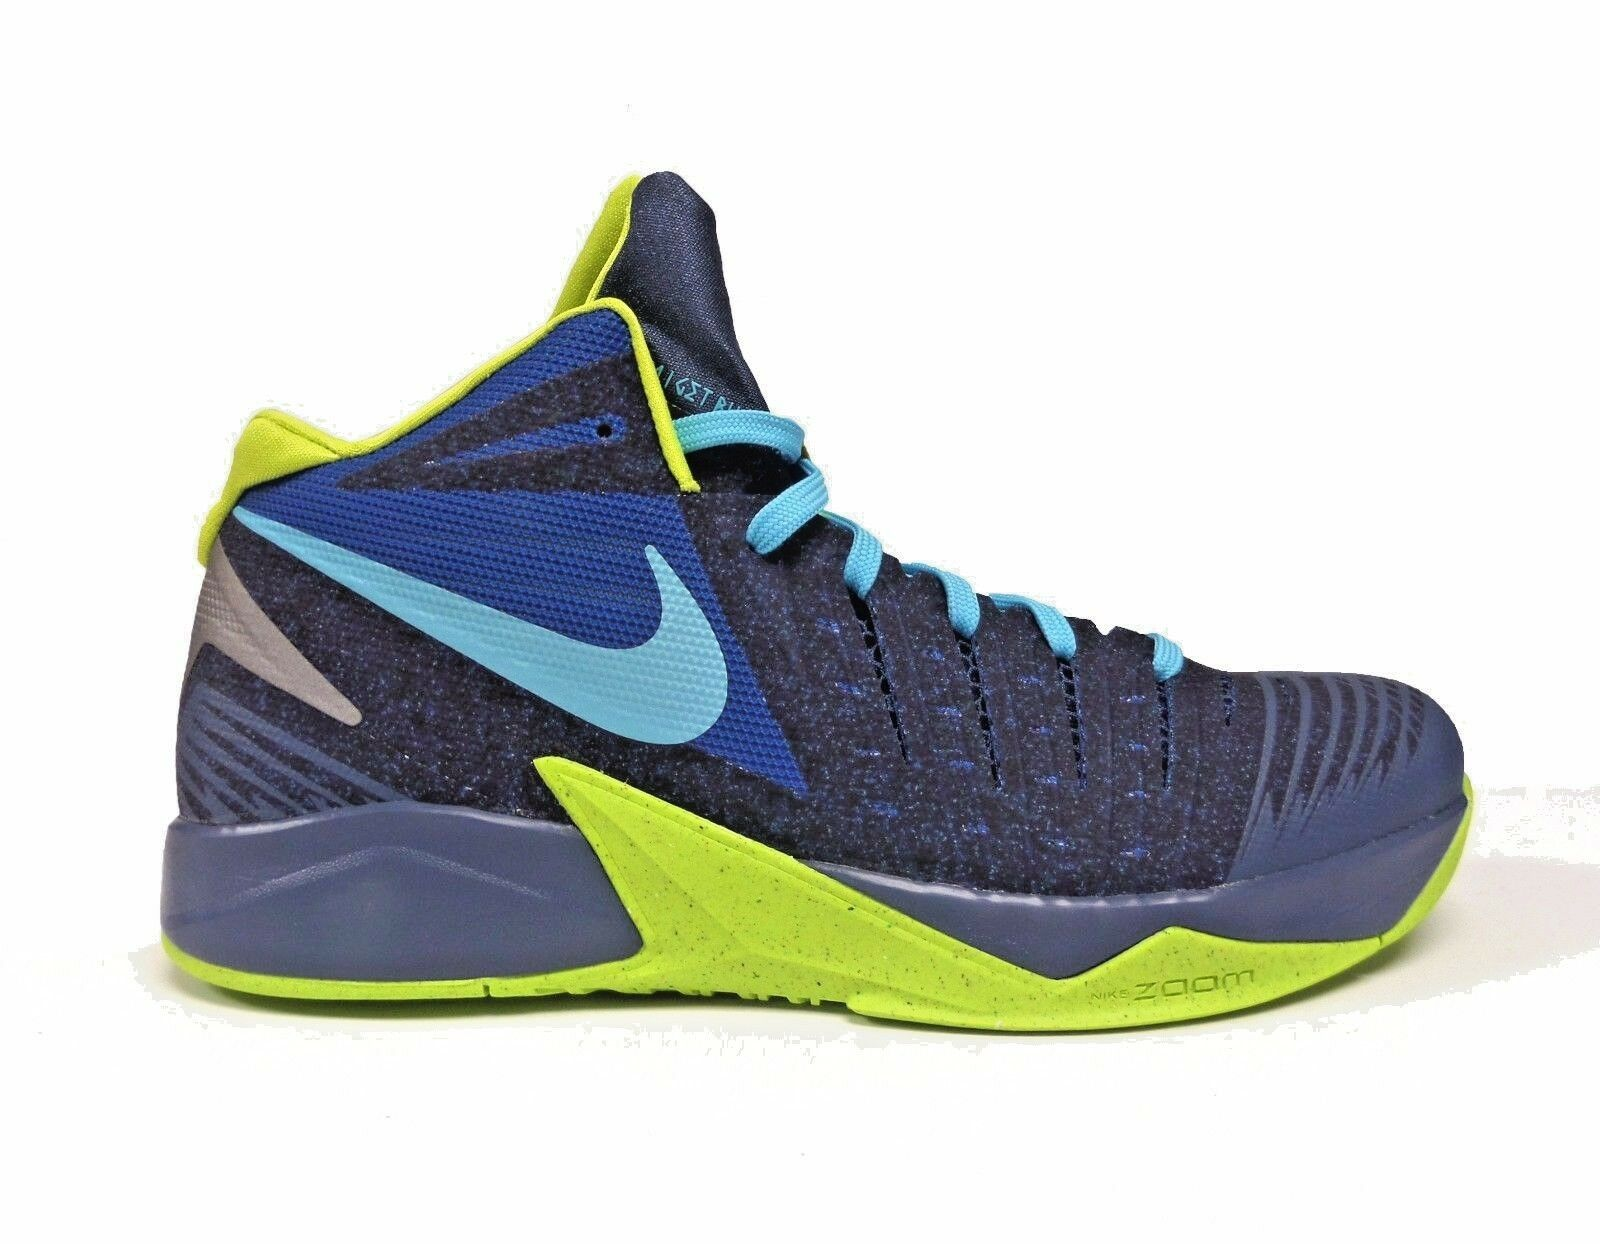 Nike Men's ZOOM I GET BUCKETS Shoes Military Blue 643300-400 a2